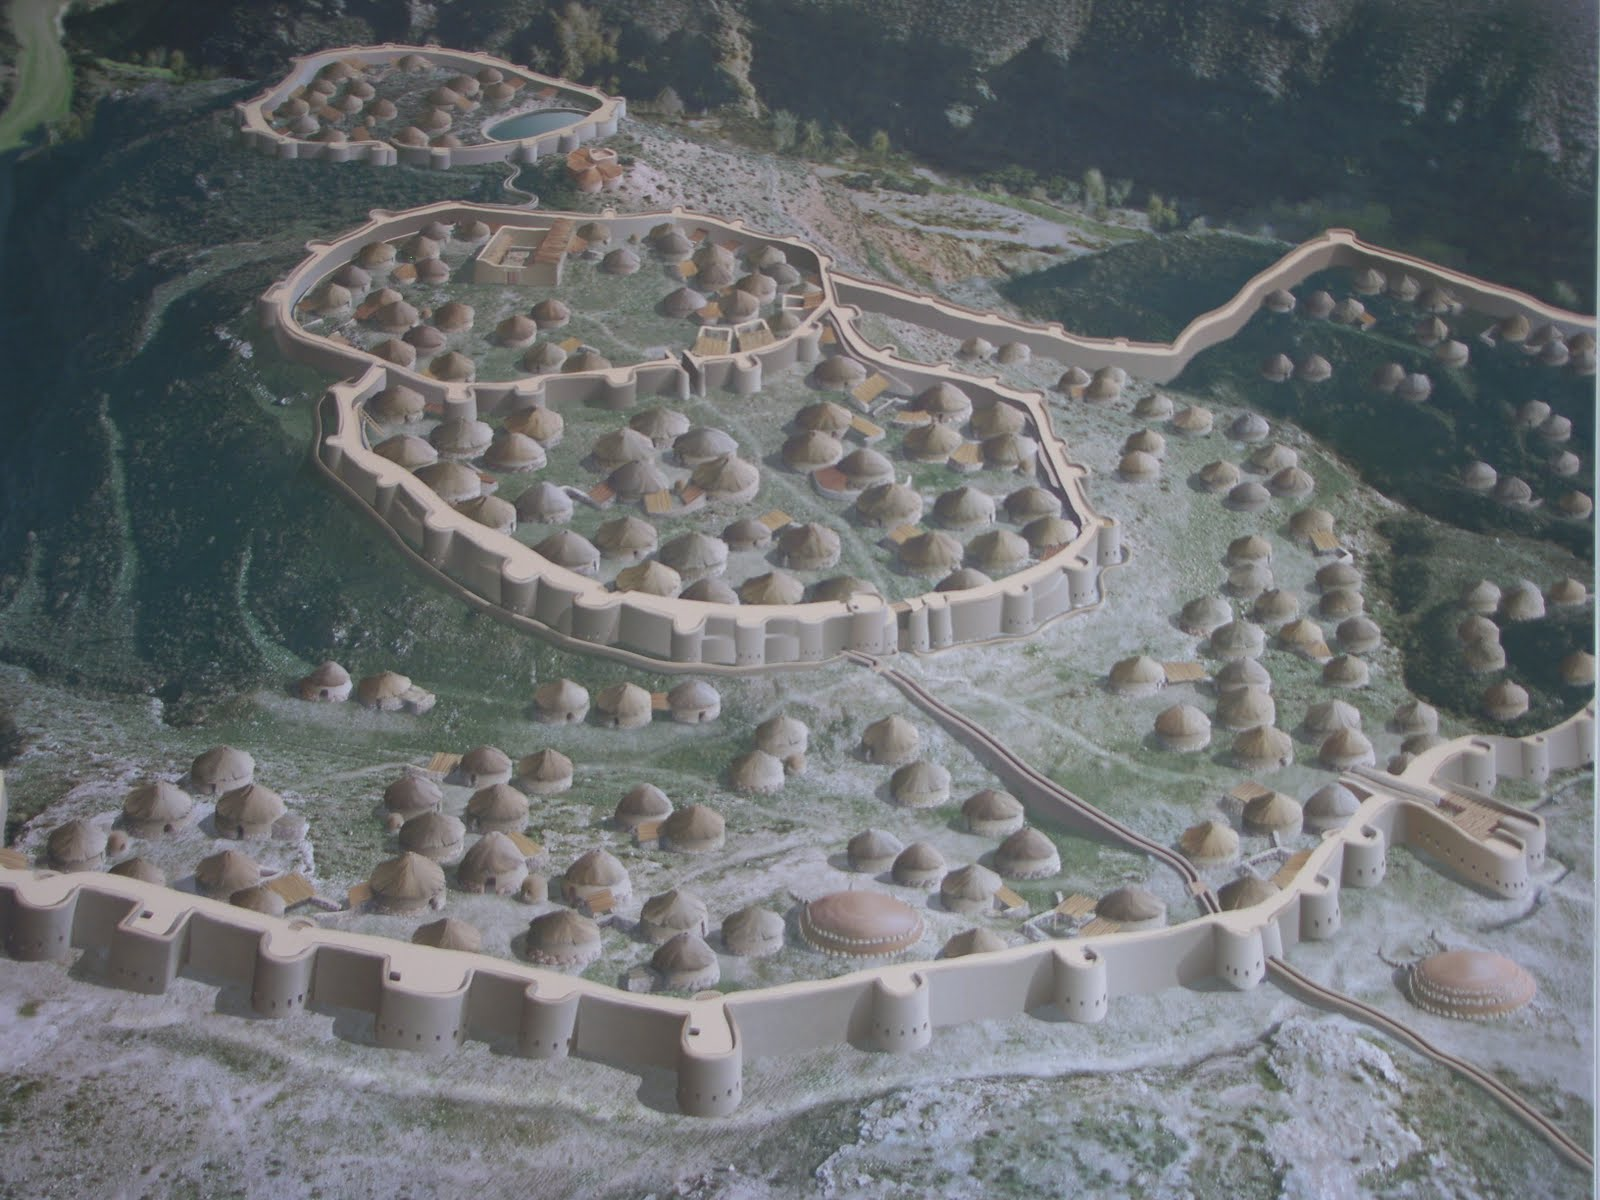 Los Millares- The Largets Known Fortified Neolithic Settlement in Europe